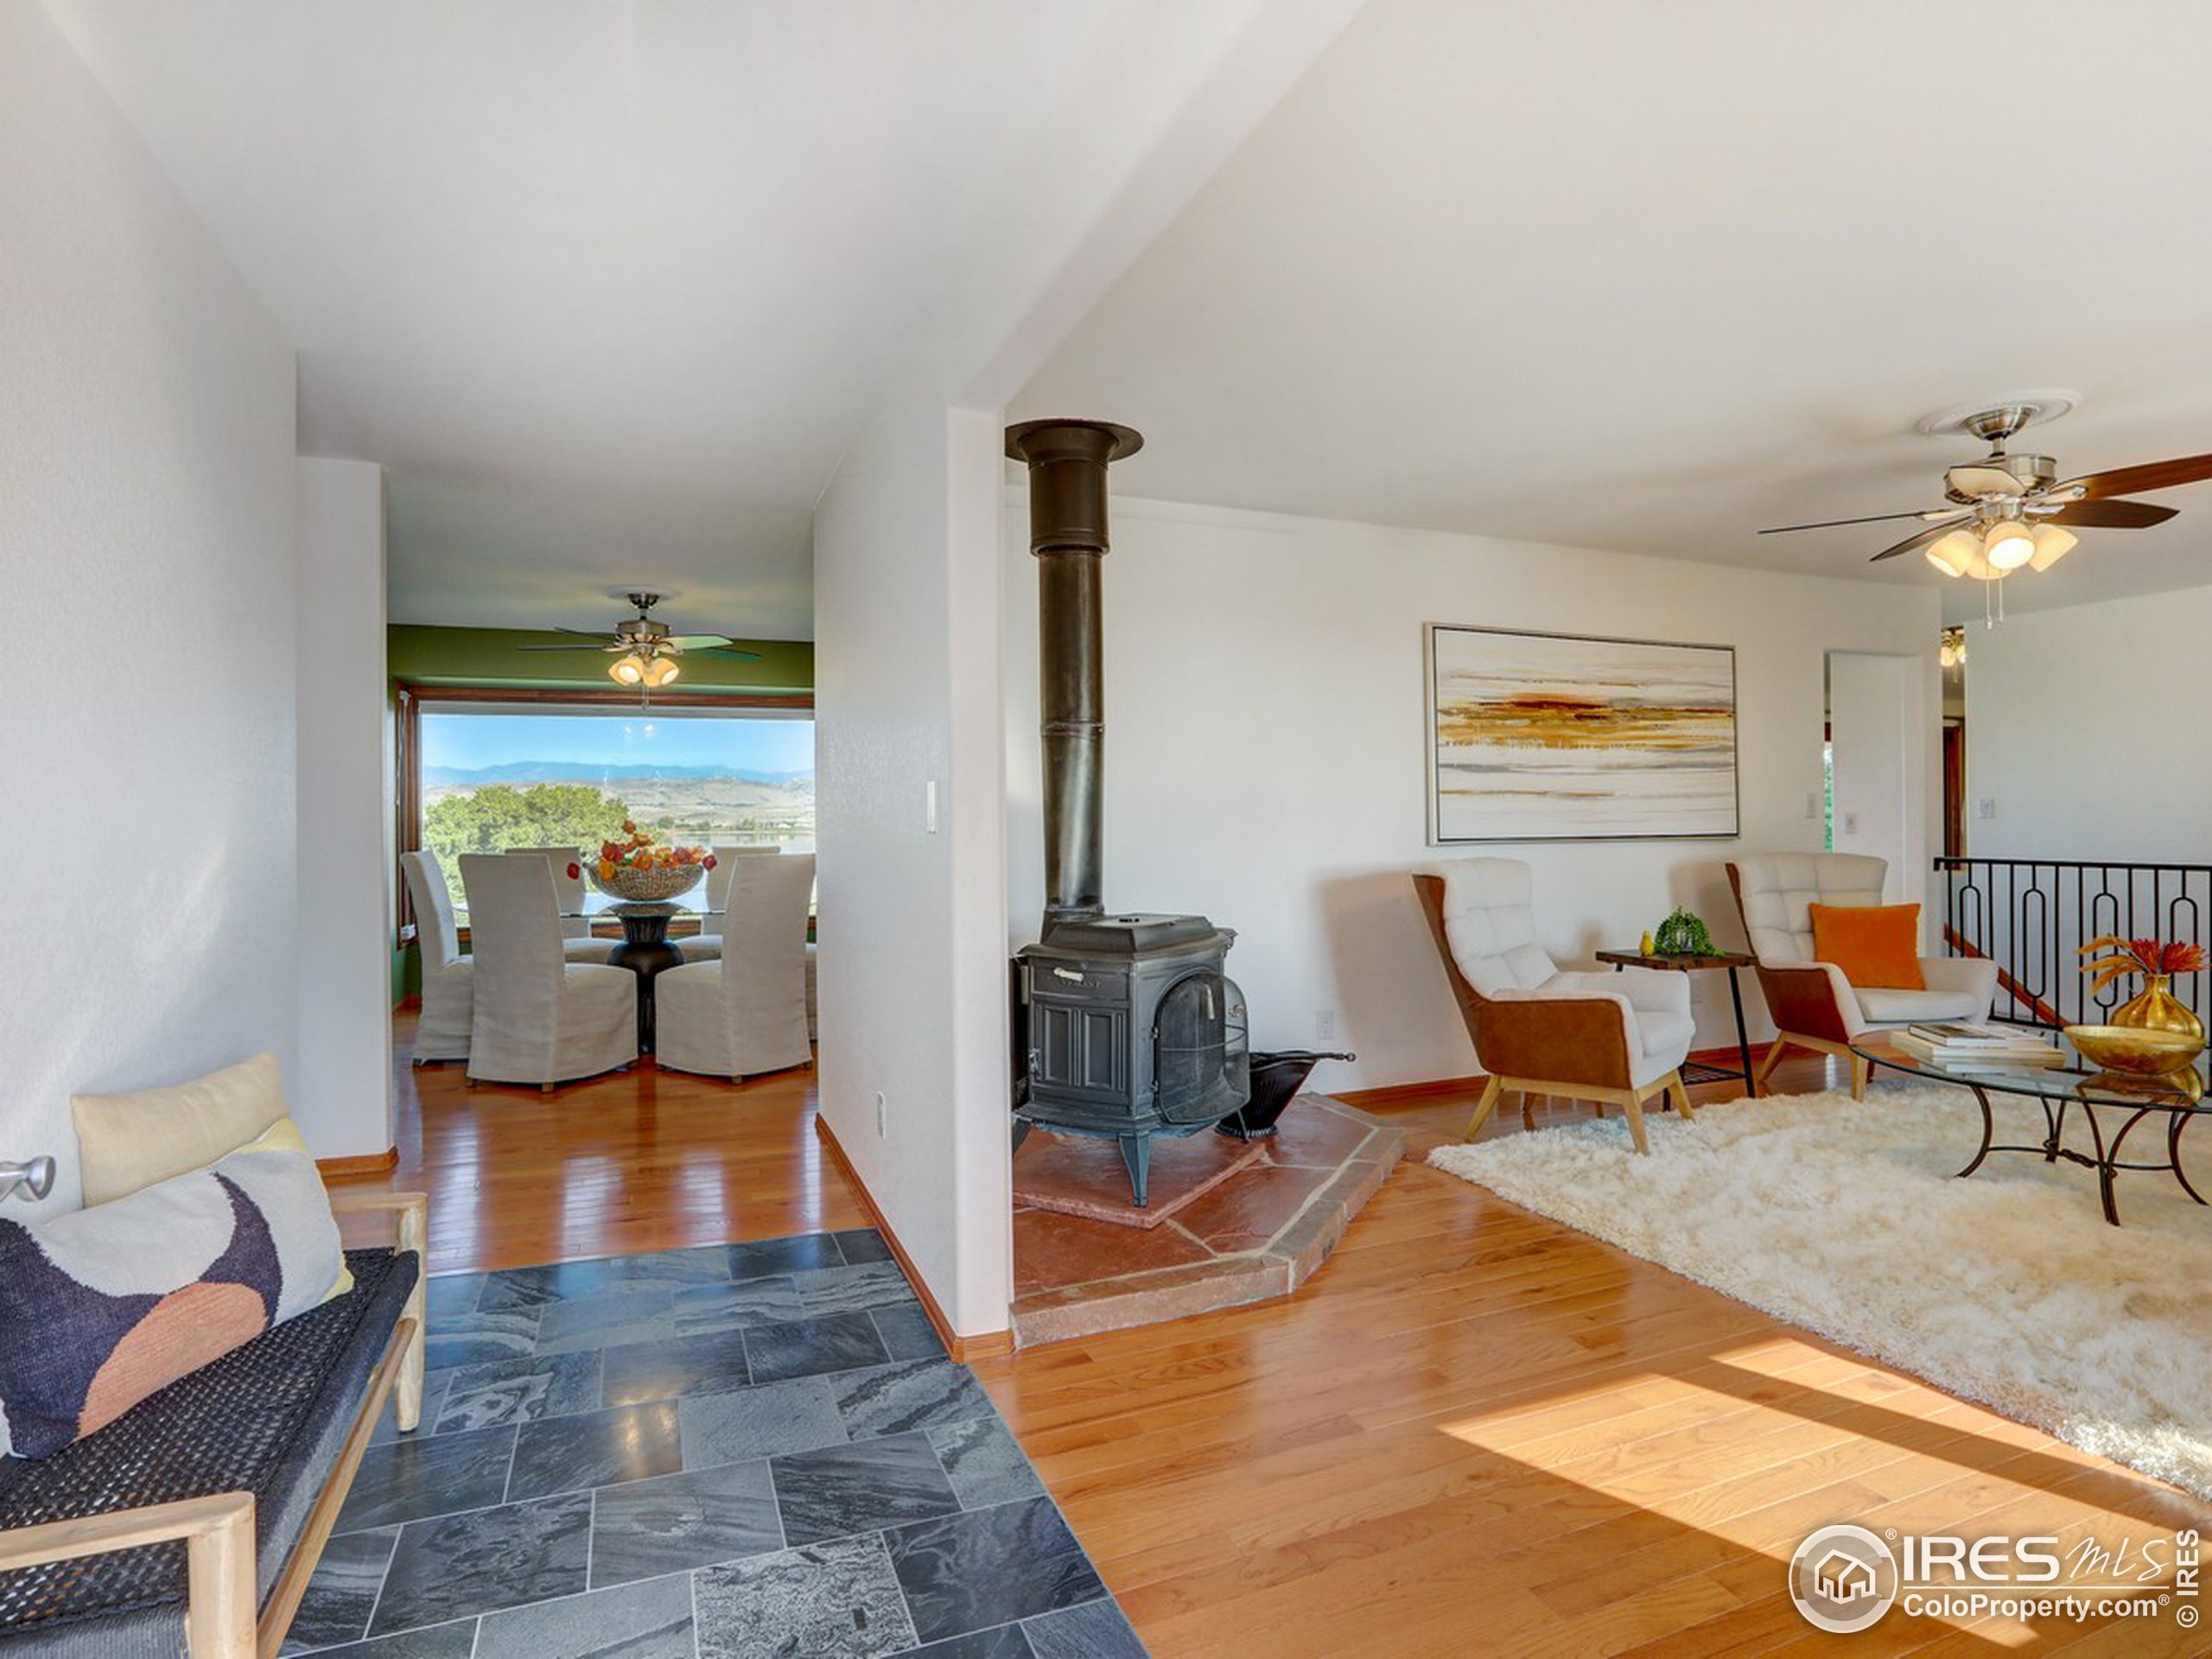 Walk in to open layout and beautiful views.